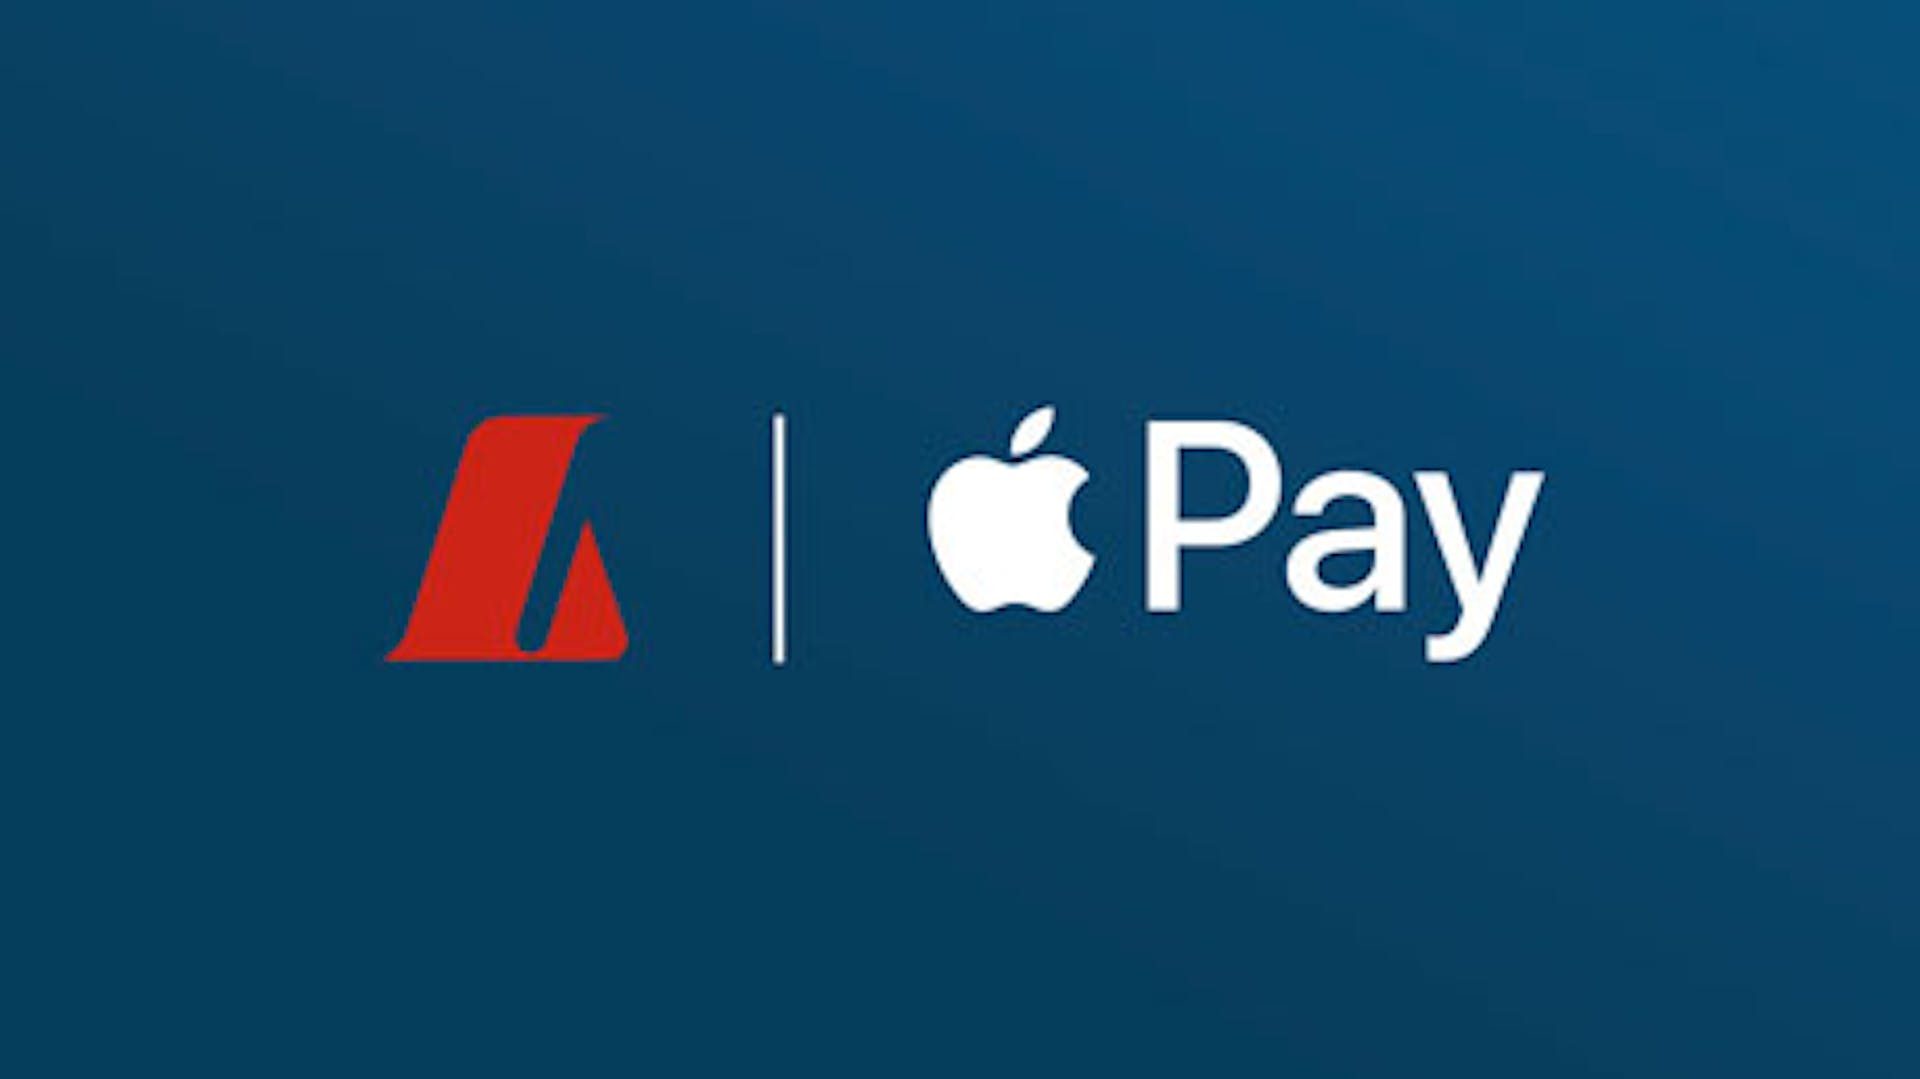 Landsbankinn + Apple Pay